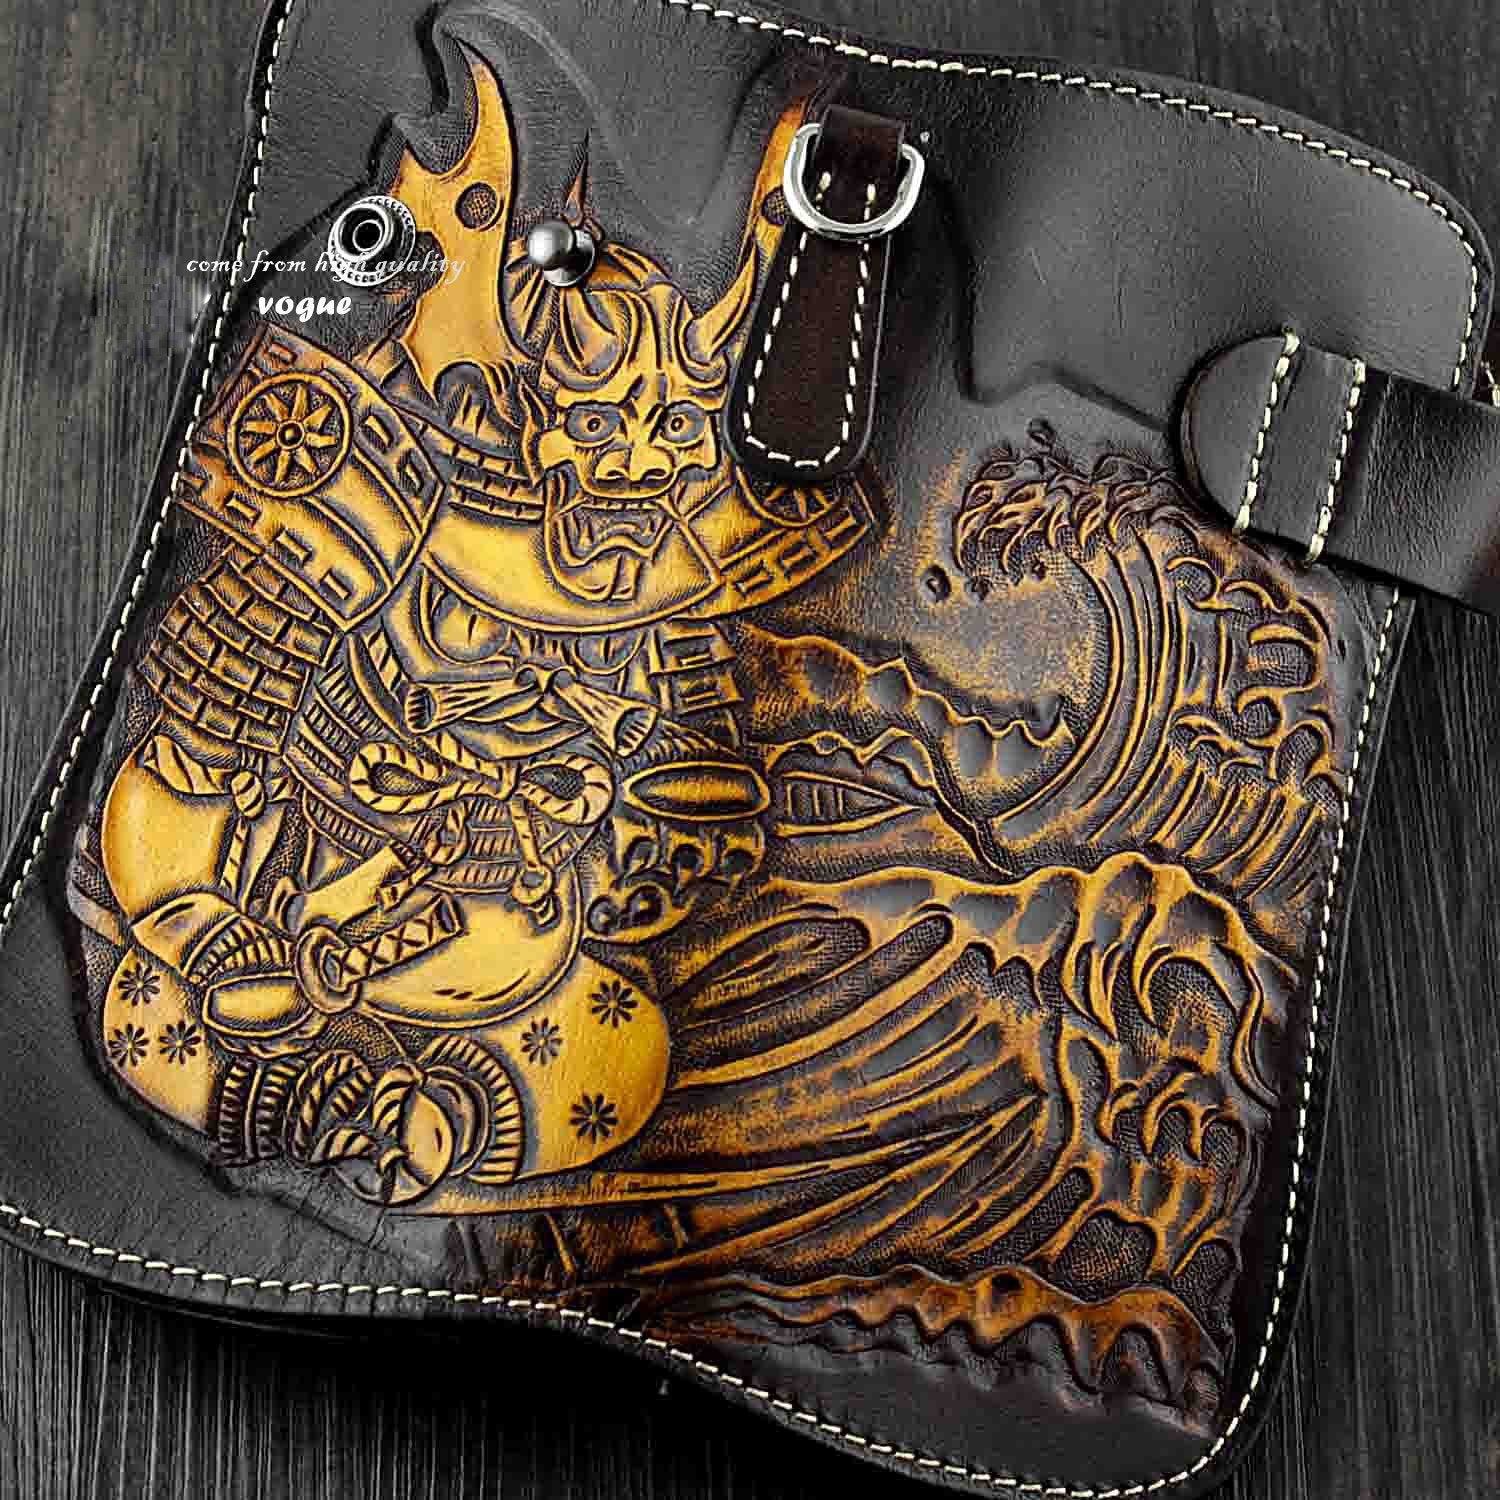 Japanese Ghost Tooled Leather Men's Biker Wallet Chain Wallet Long Wallet with Chain For Men